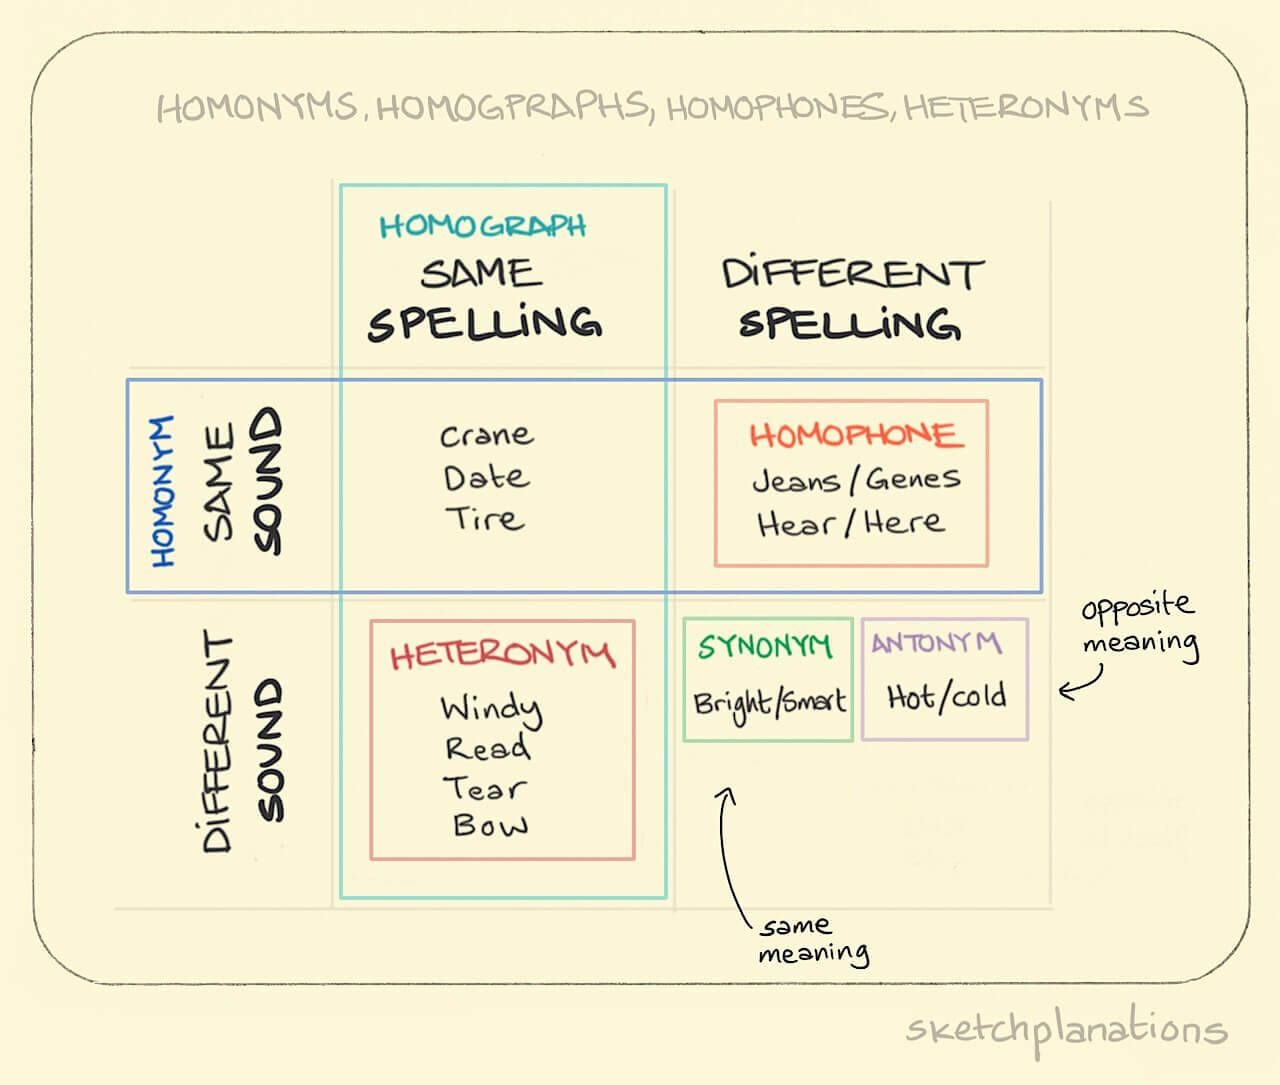 Homonyms Homographs Homophones Heteronyms This One